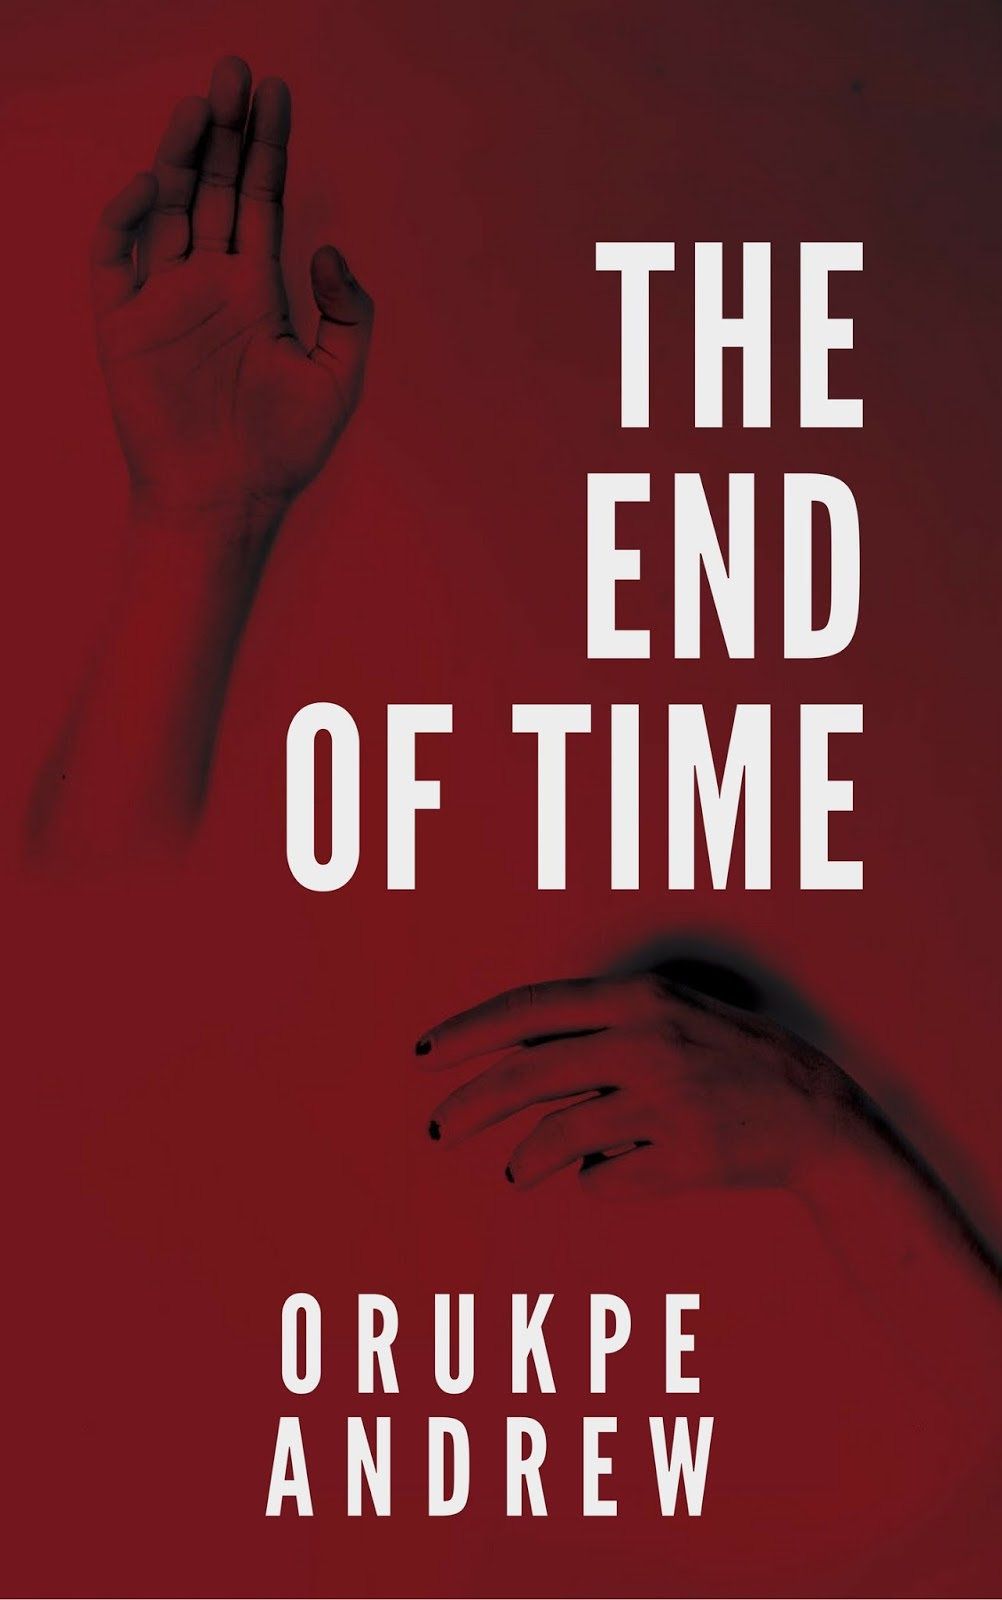 The End of Time by Orukpe Andrew